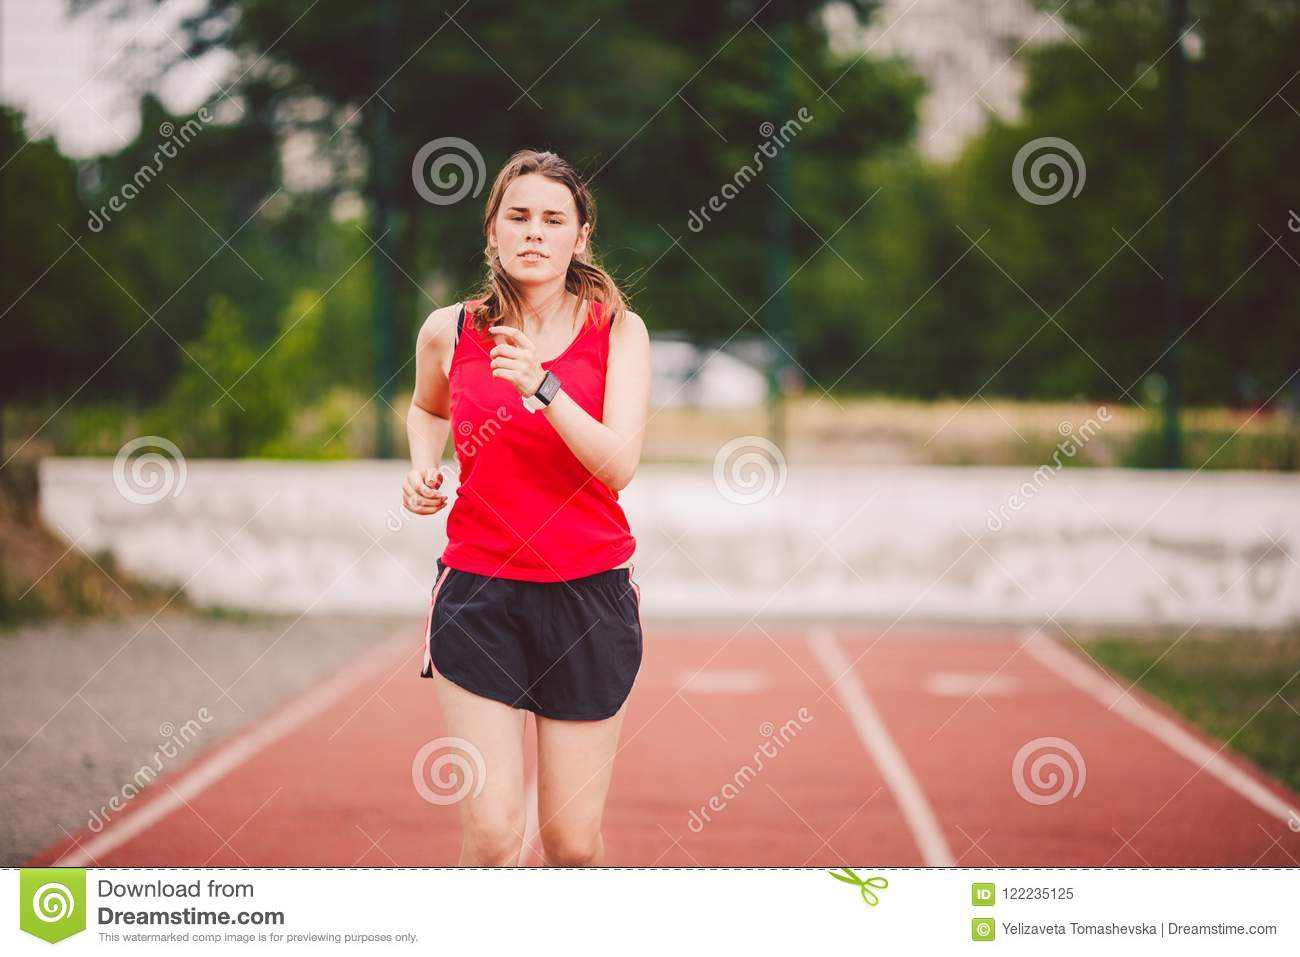 Jogging Run Time Beautiful Young Athlete Caucasian Woman With Big Breasts In